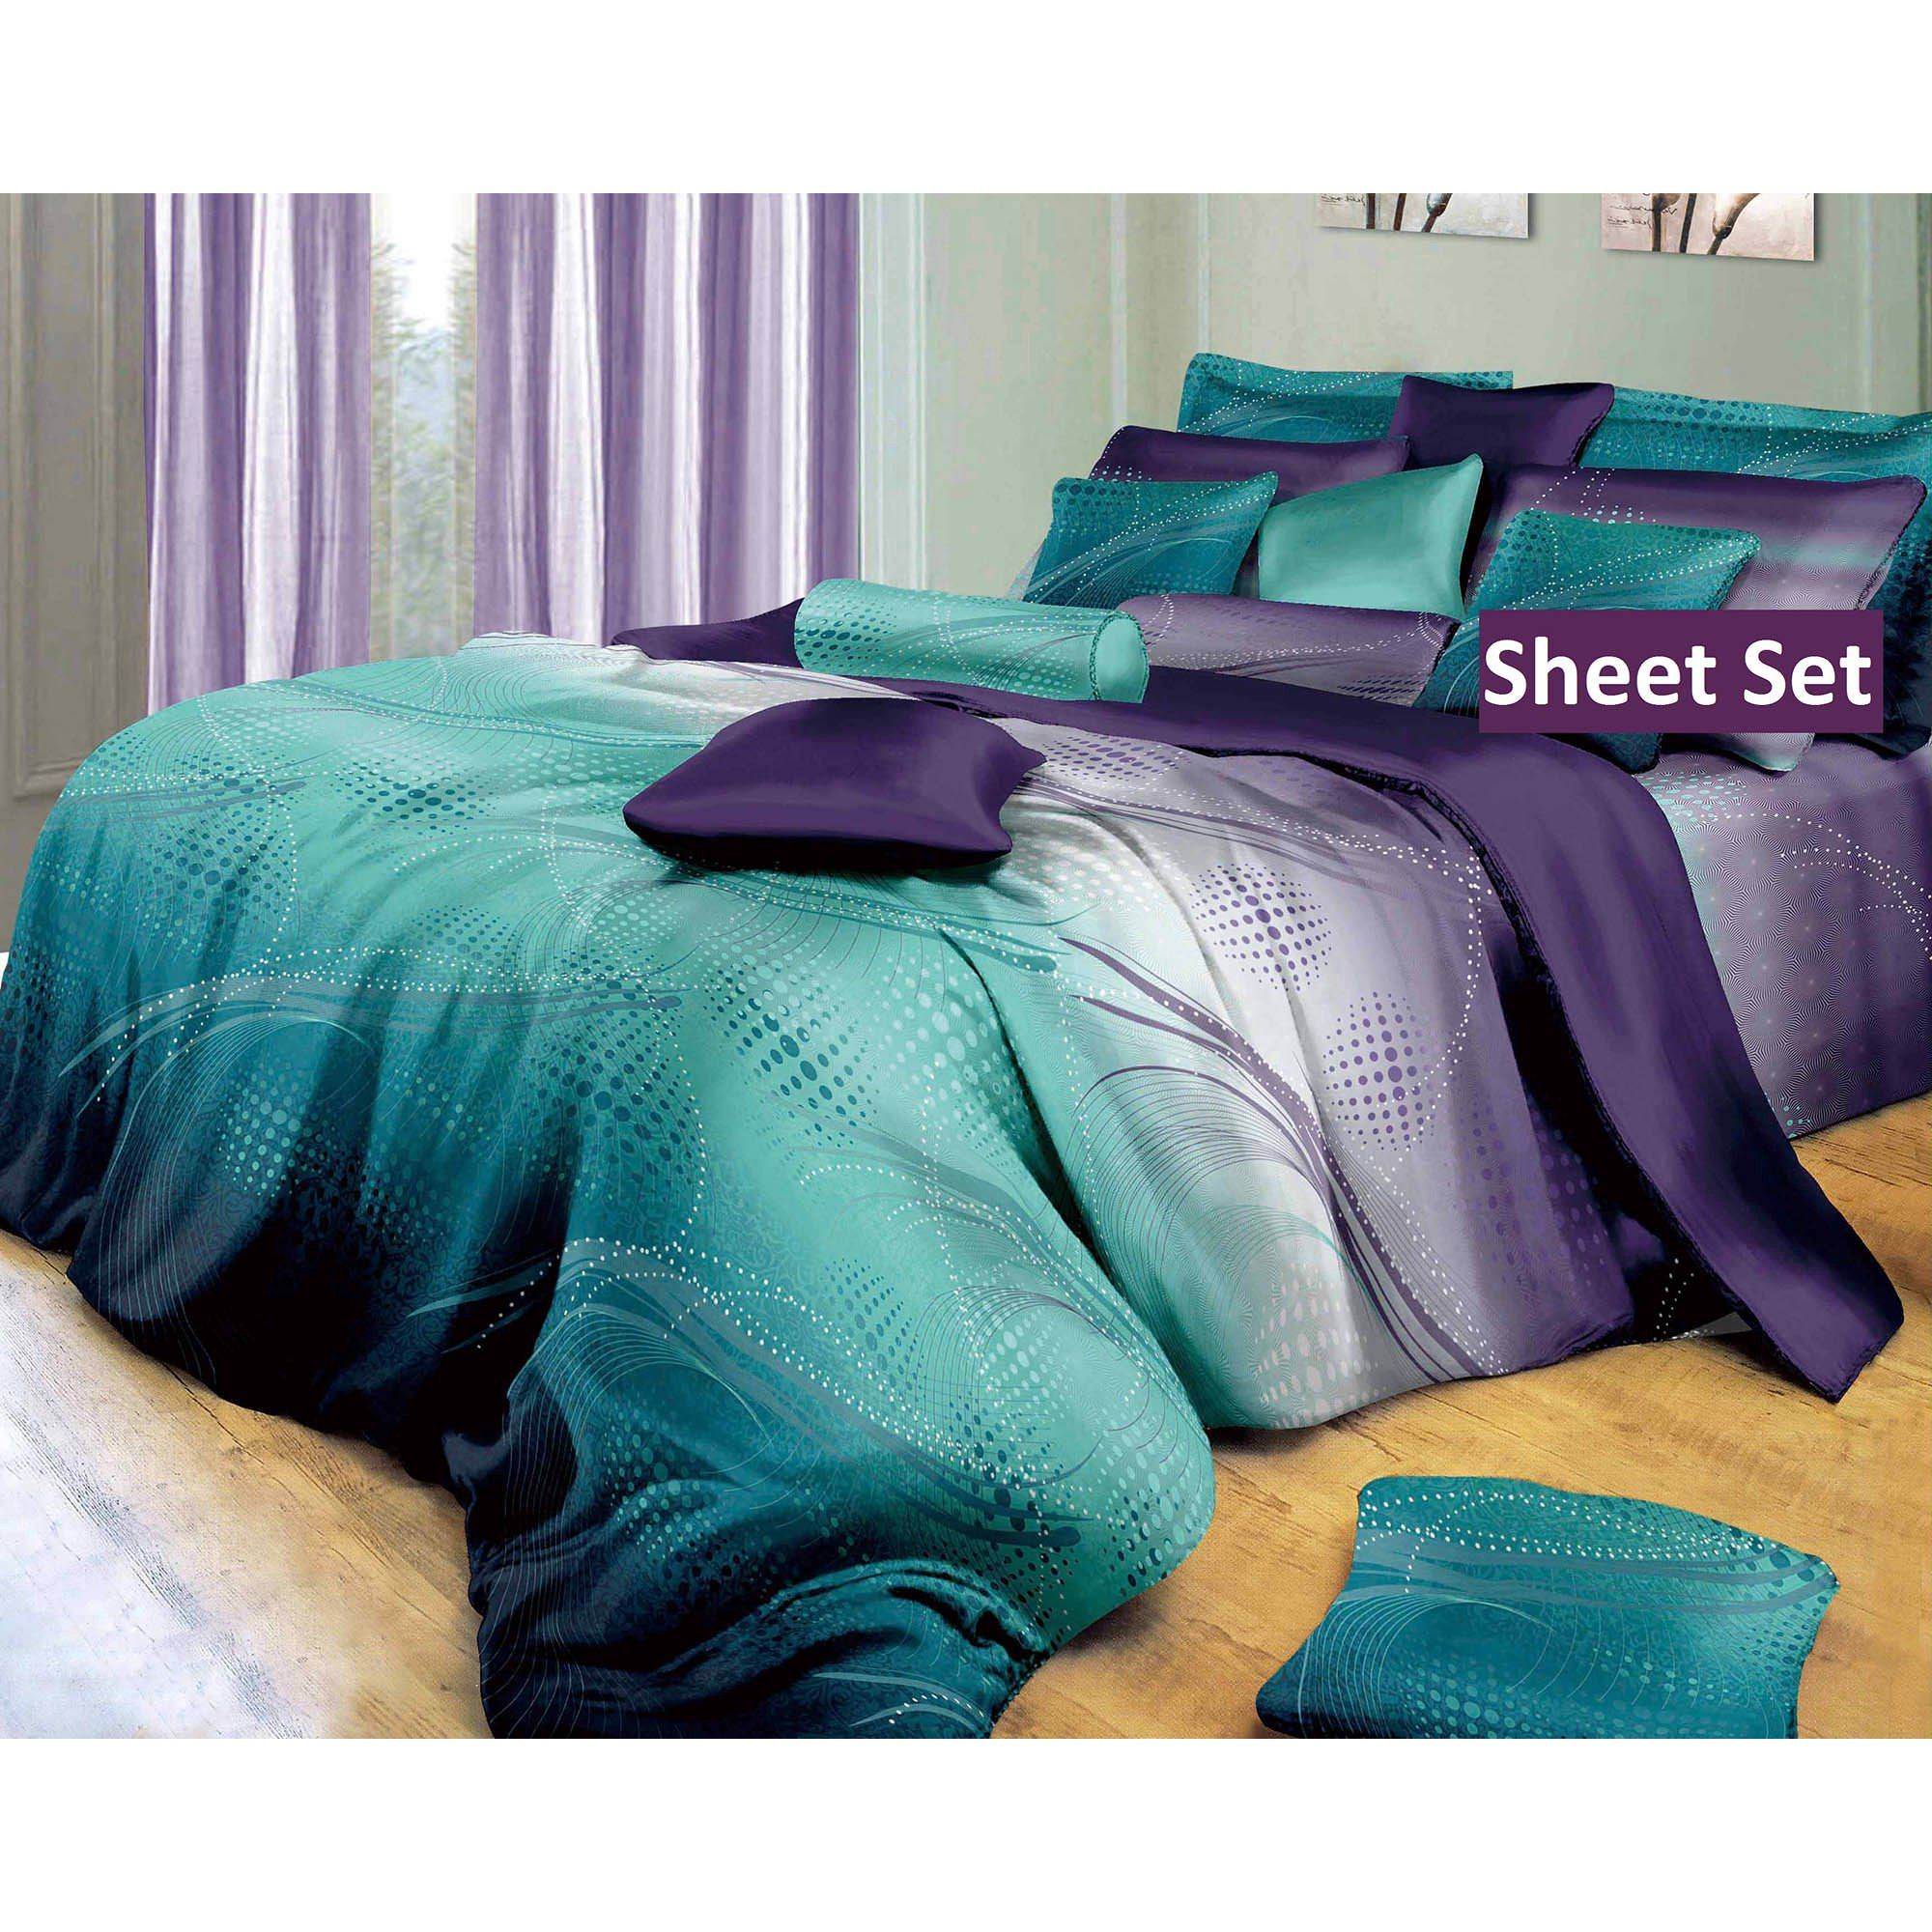 Swanson Beddings Luxury Twilight 100 Cotton Sheet Set Fitted Sheet Flat Sheet And Two Matching Pillowcases King Walmart Com In 2020 Luxury Bedding Bed Linens Luxury Bed Linen Design